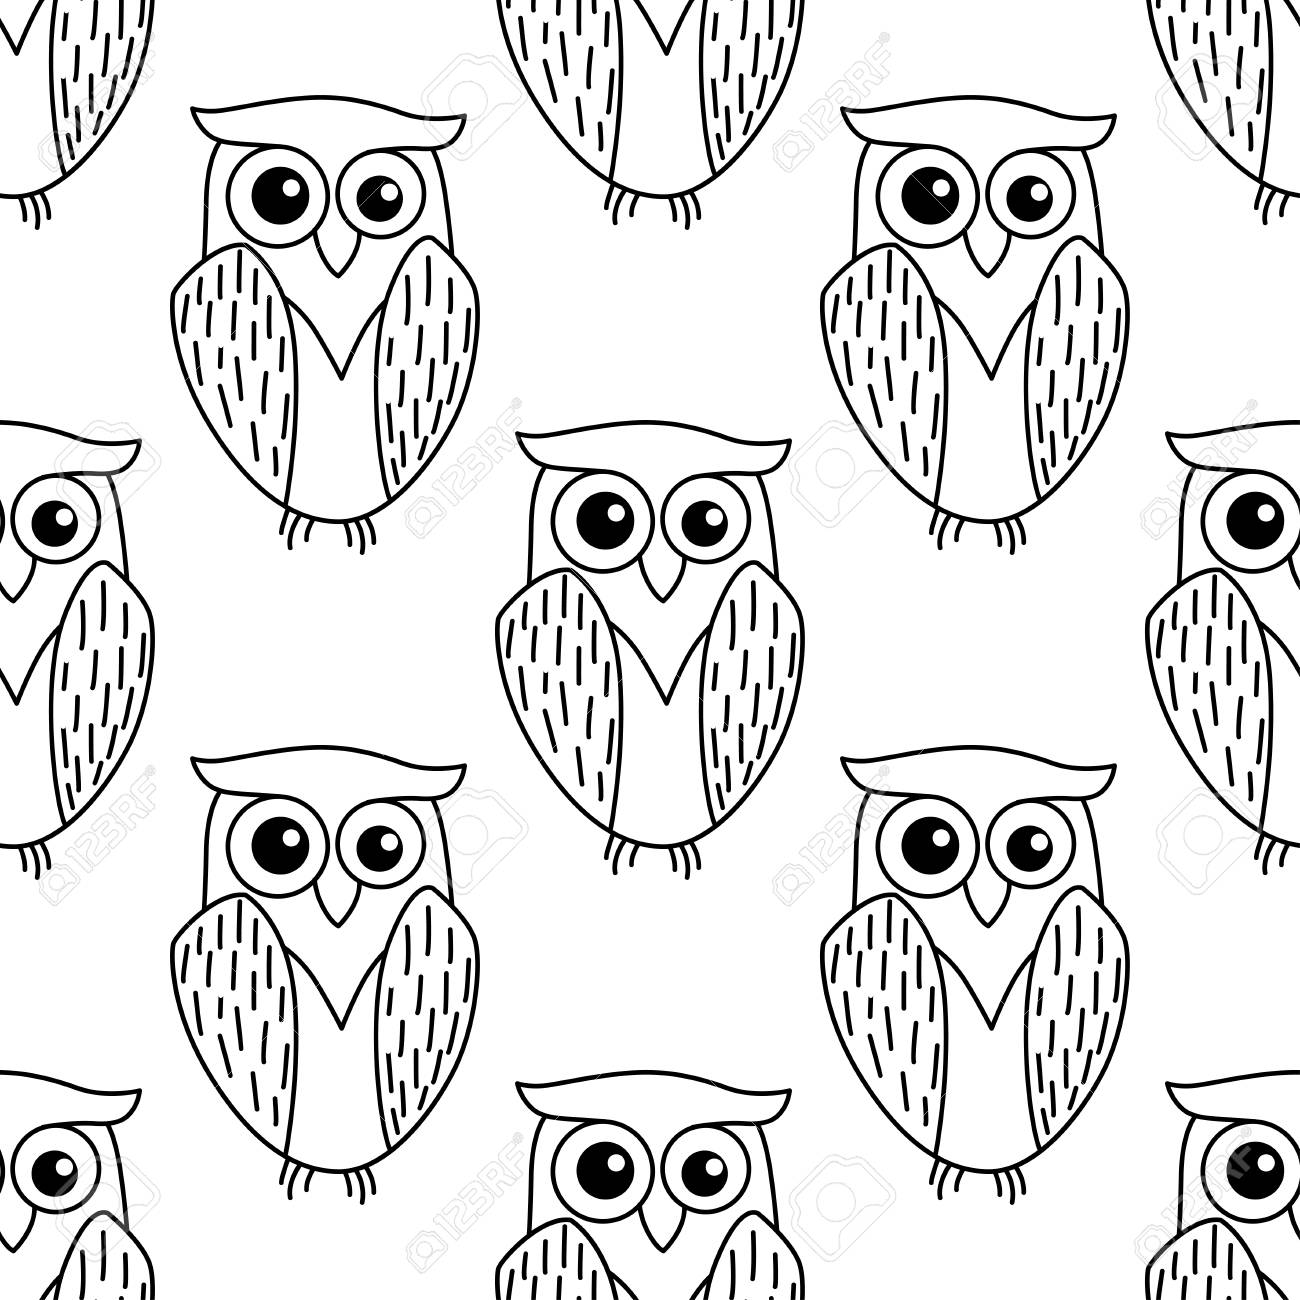 cute little owl seamless background pattern in a dainty outline